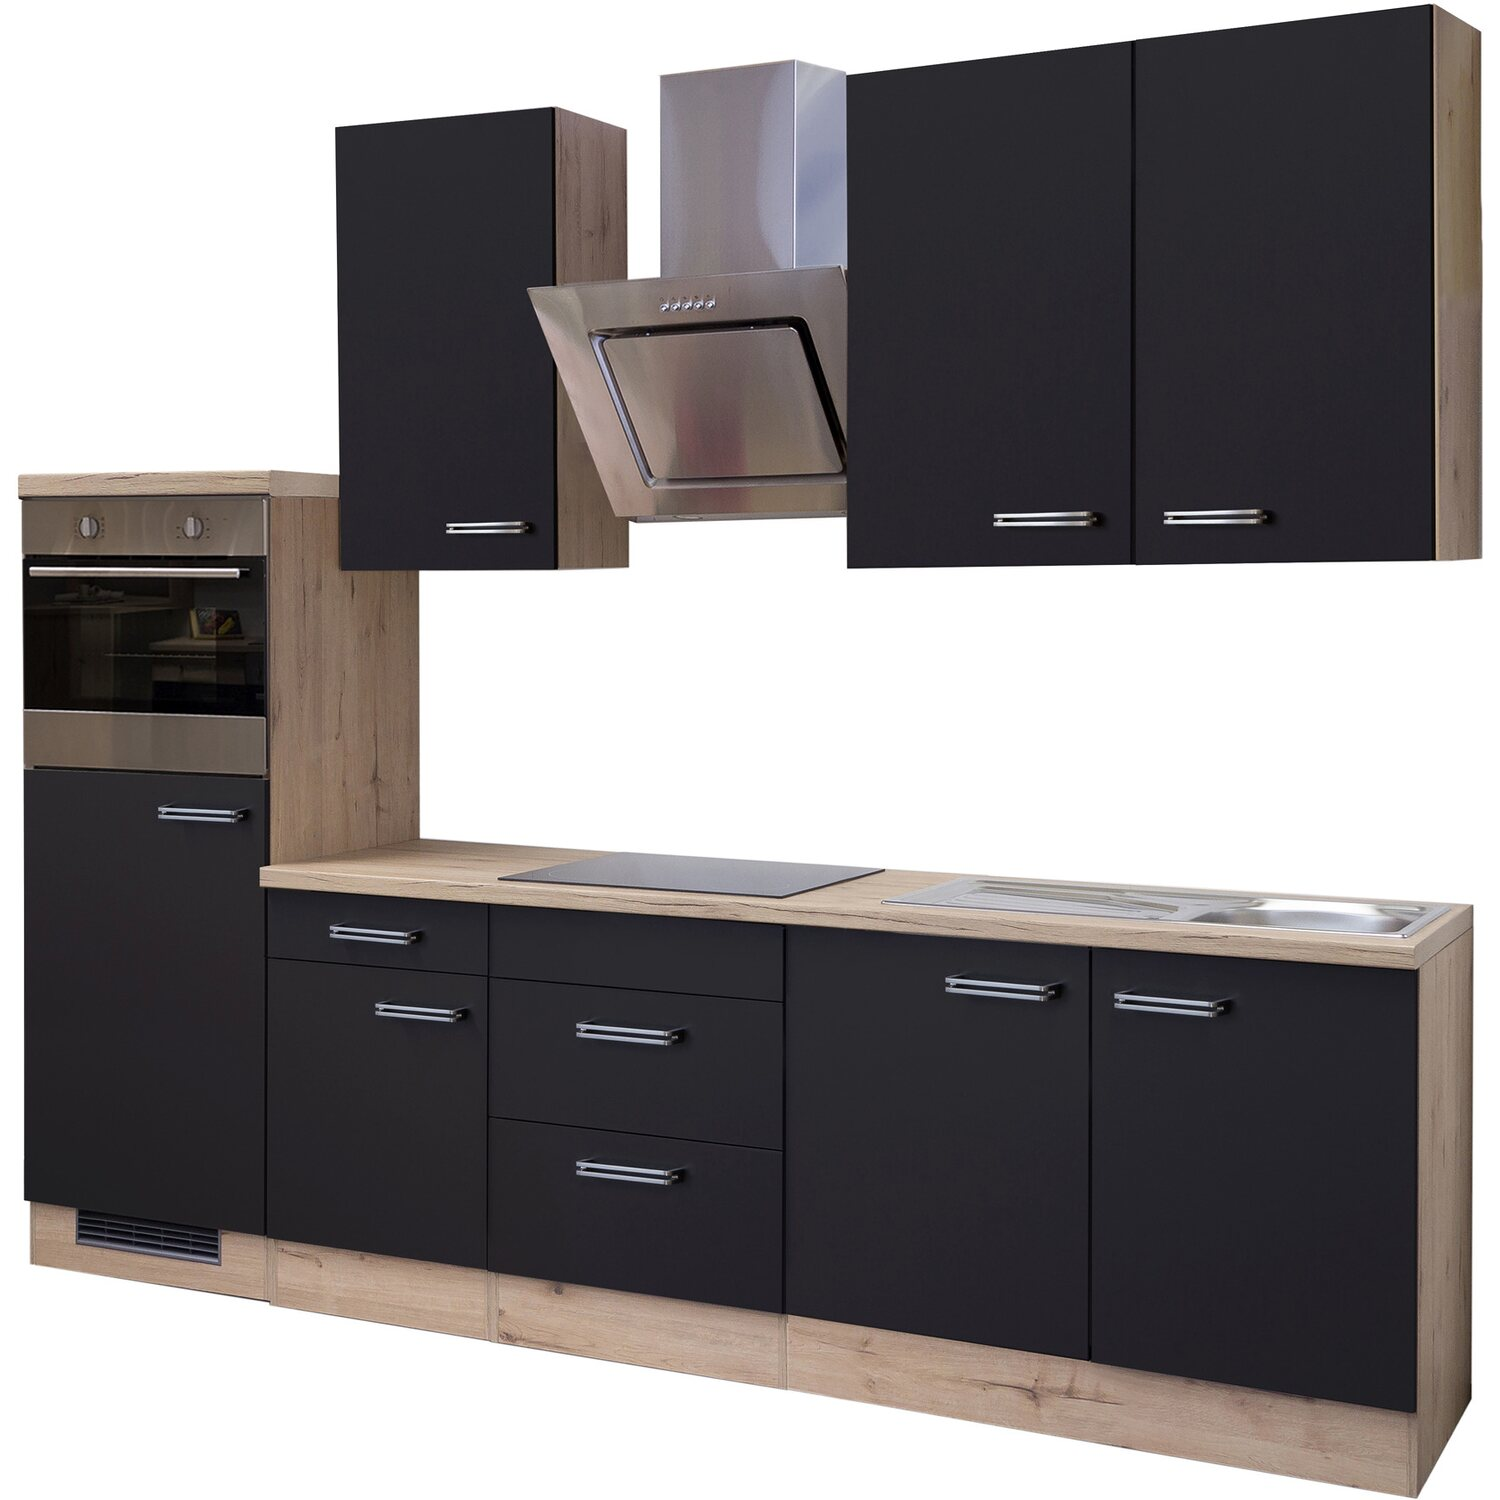 flex well exclusiv k chenzeile milano 270 cm anthrazit san. Black Bedroom Furniture Sets. Home Design Ideas